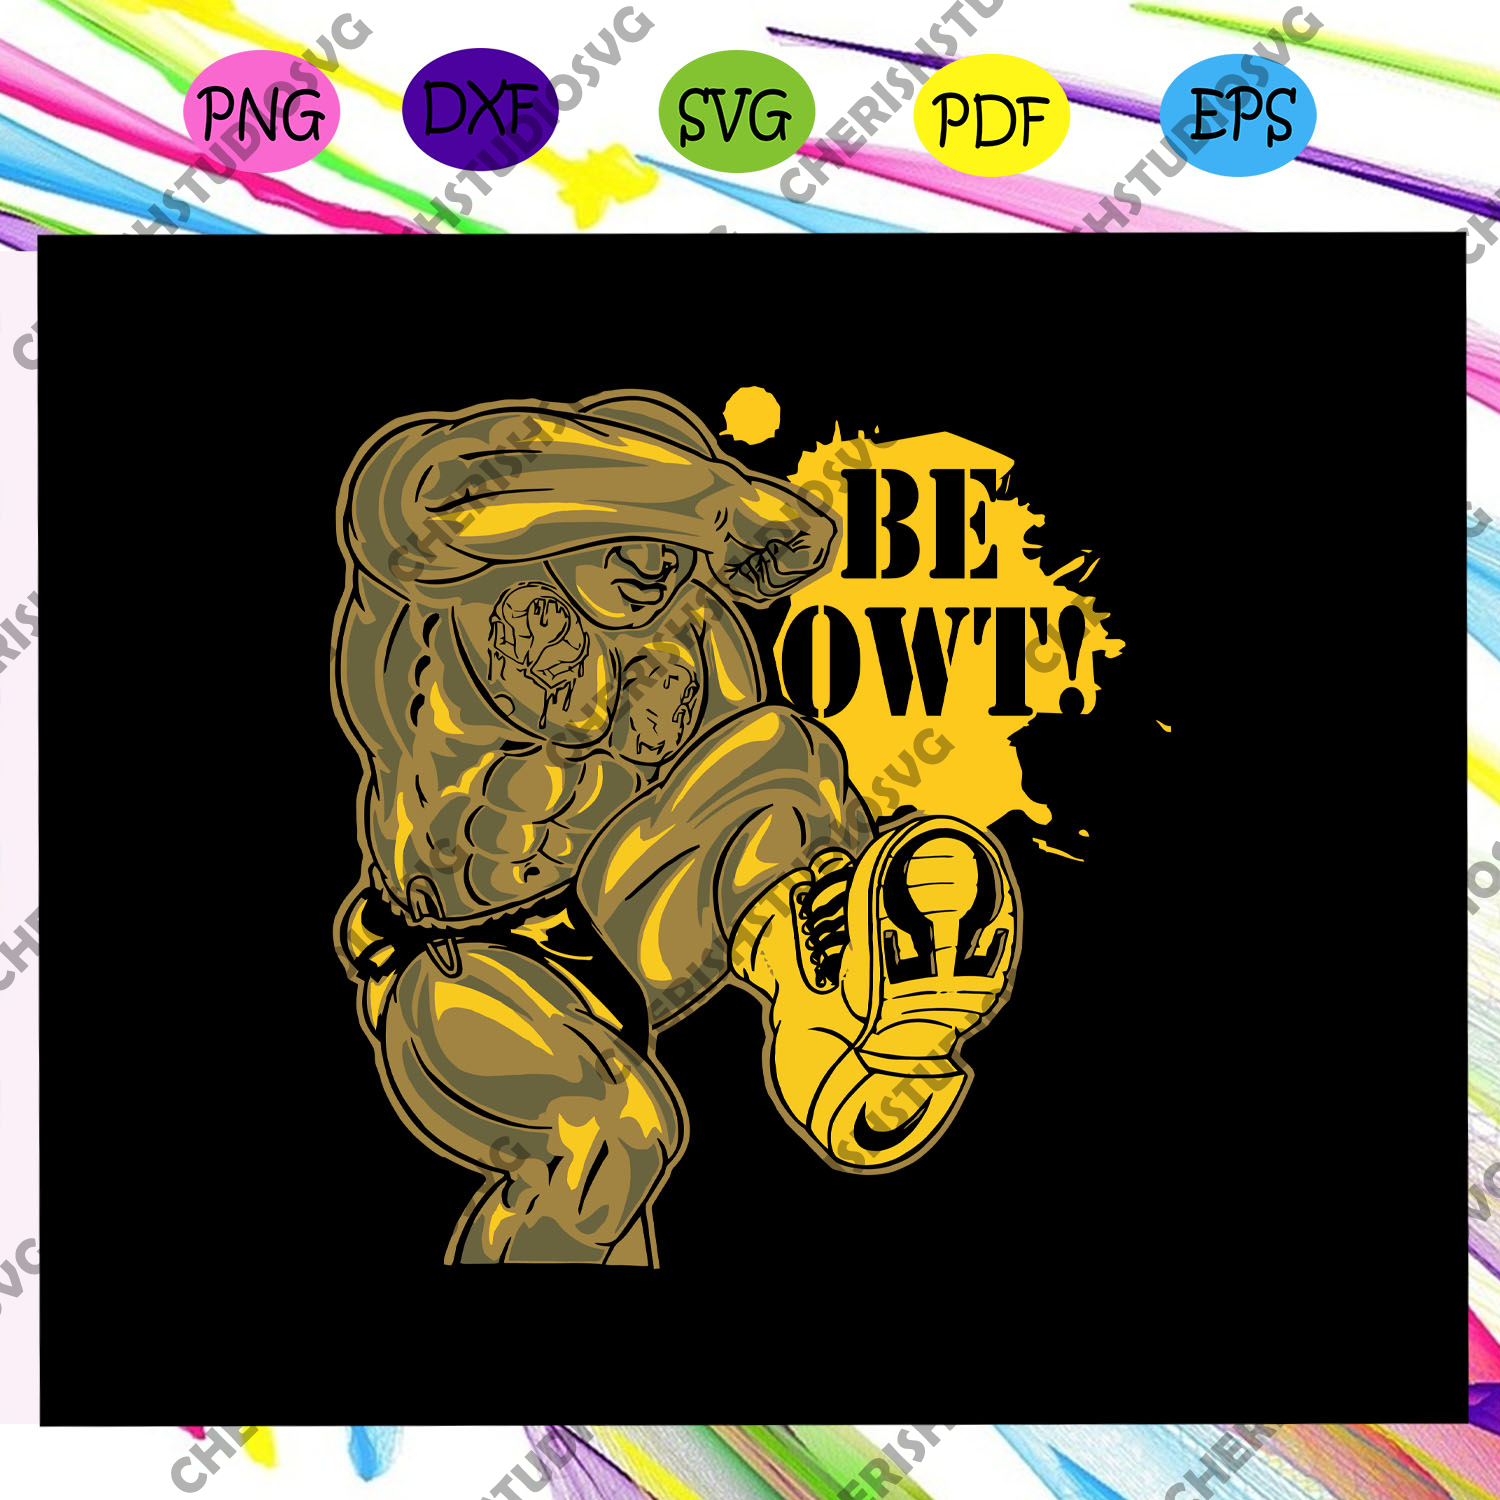 Be owt, Omega psi phi svg, Omega psi phi gift, Omega psi phi, Omega psi svg, Omega psi gift,psi phi sorority, sorority svg, sorority shirt,sorority gift, Files For Silhouette, Files For Cricut, SVG, DXF, EPS, PNG, Instant Download